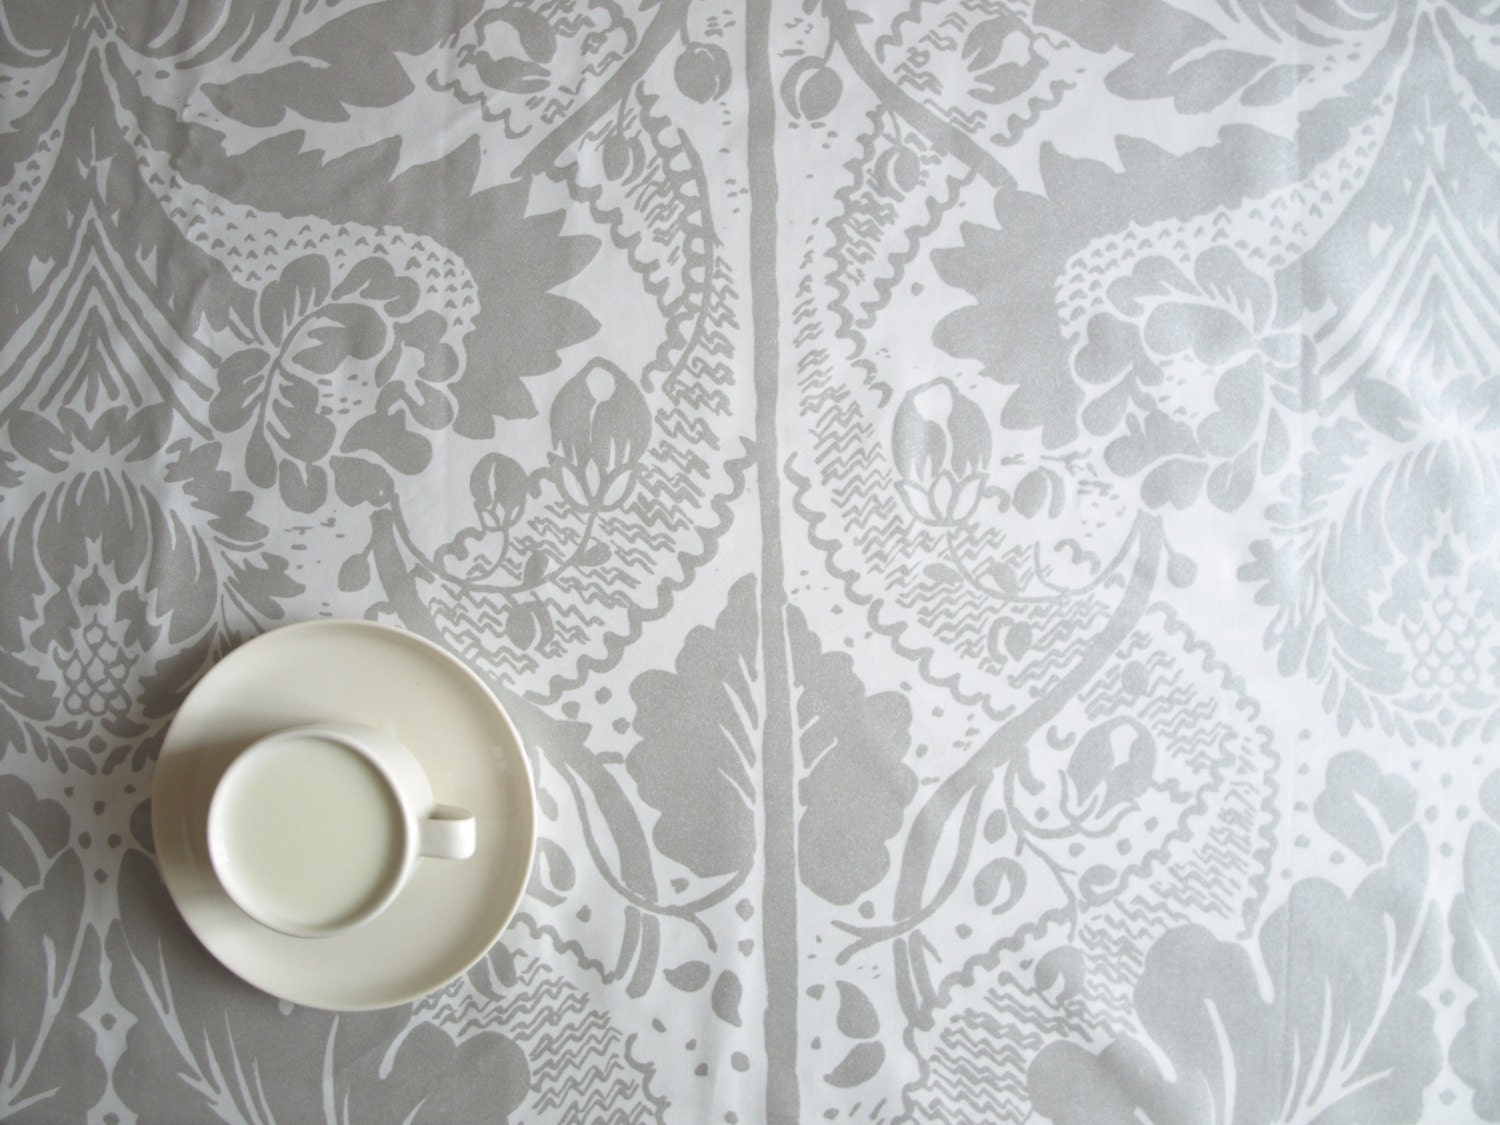 Gray and white damask curtains - Marimekko Tablecloth White Grey Silver Damask Leaves Tree Flowers Also Table Runner Napkins Pillow Curtains Available Great Gift